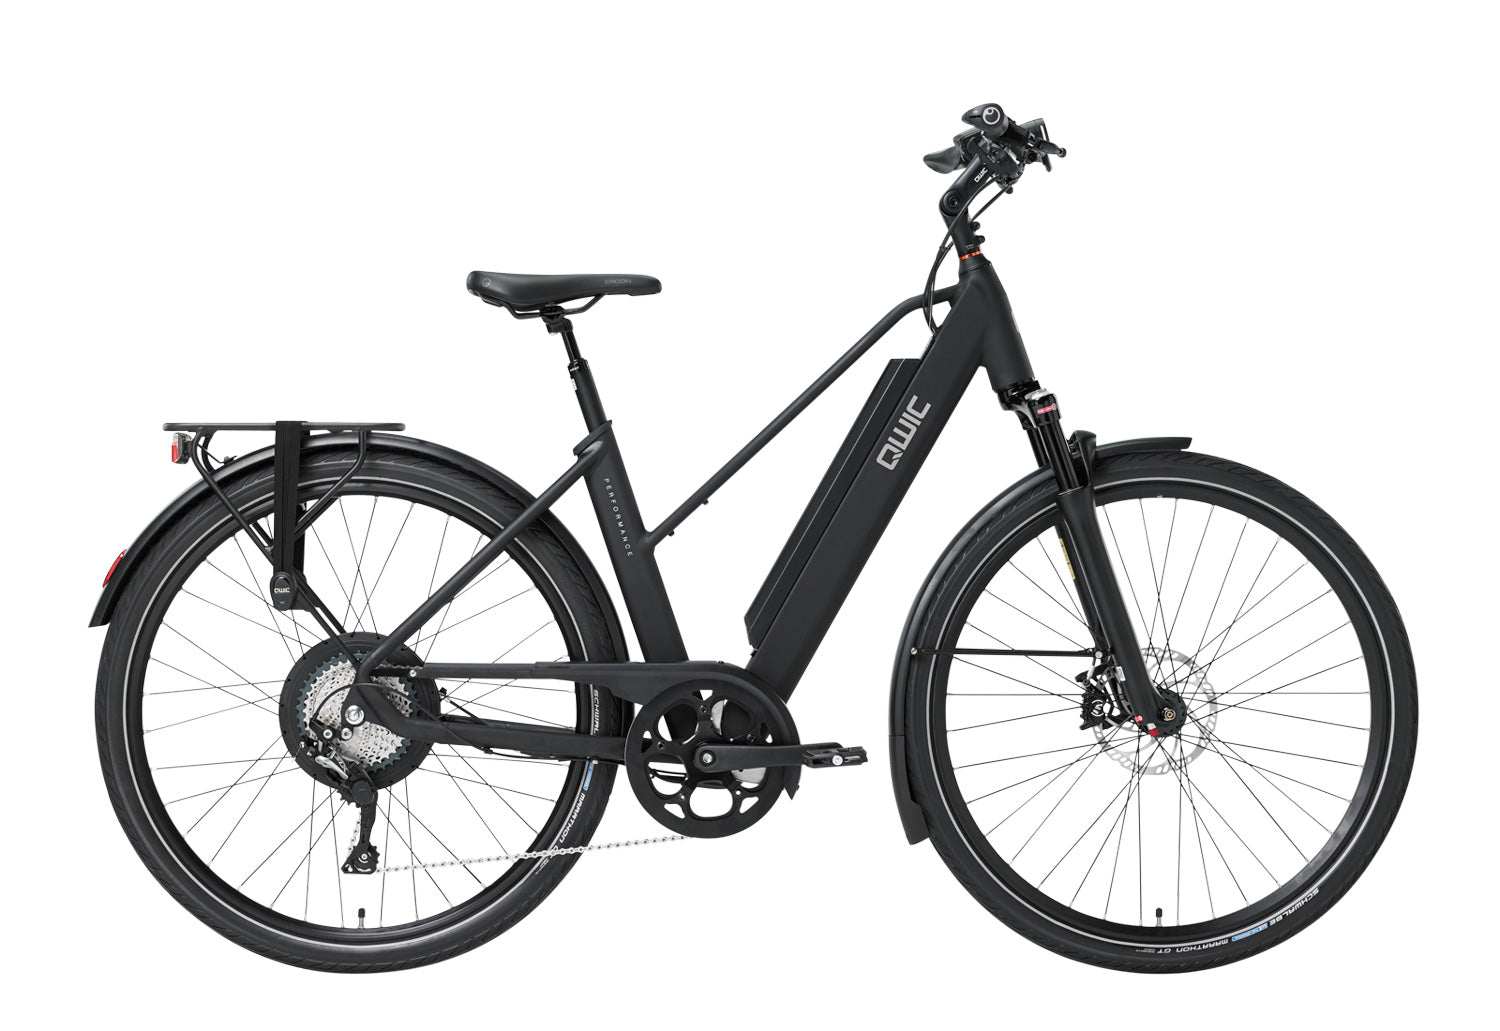 QWIC-RD11 Performance 15.5mph-Classic ebike-Matt Black Comfort-Medium 48cm-525Wh-urban.ebikes